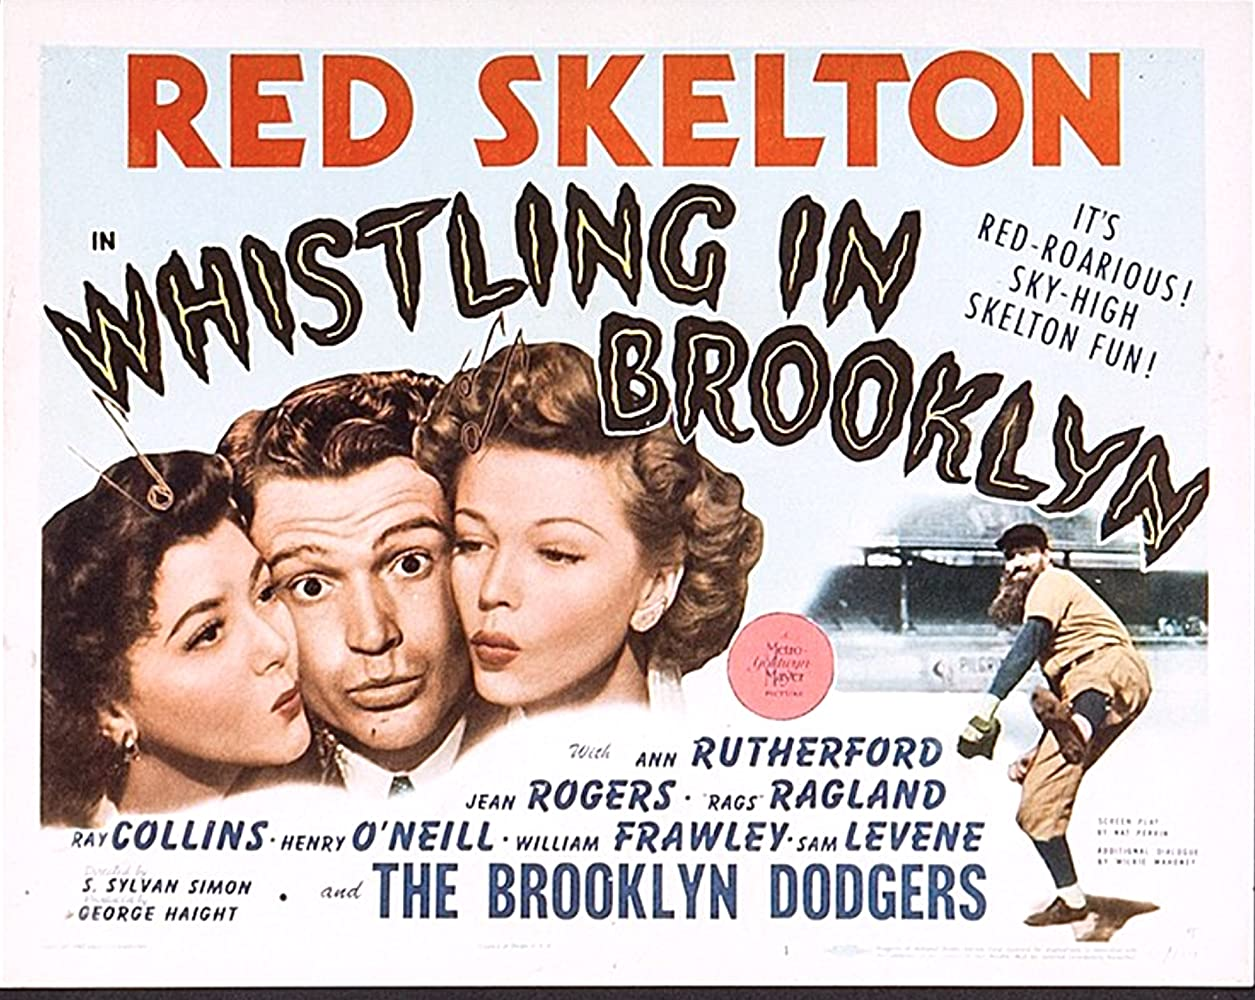 Jean Rogers, Ann Rutherford, and Red Skelton in Whistling in Brooklyn (1943)